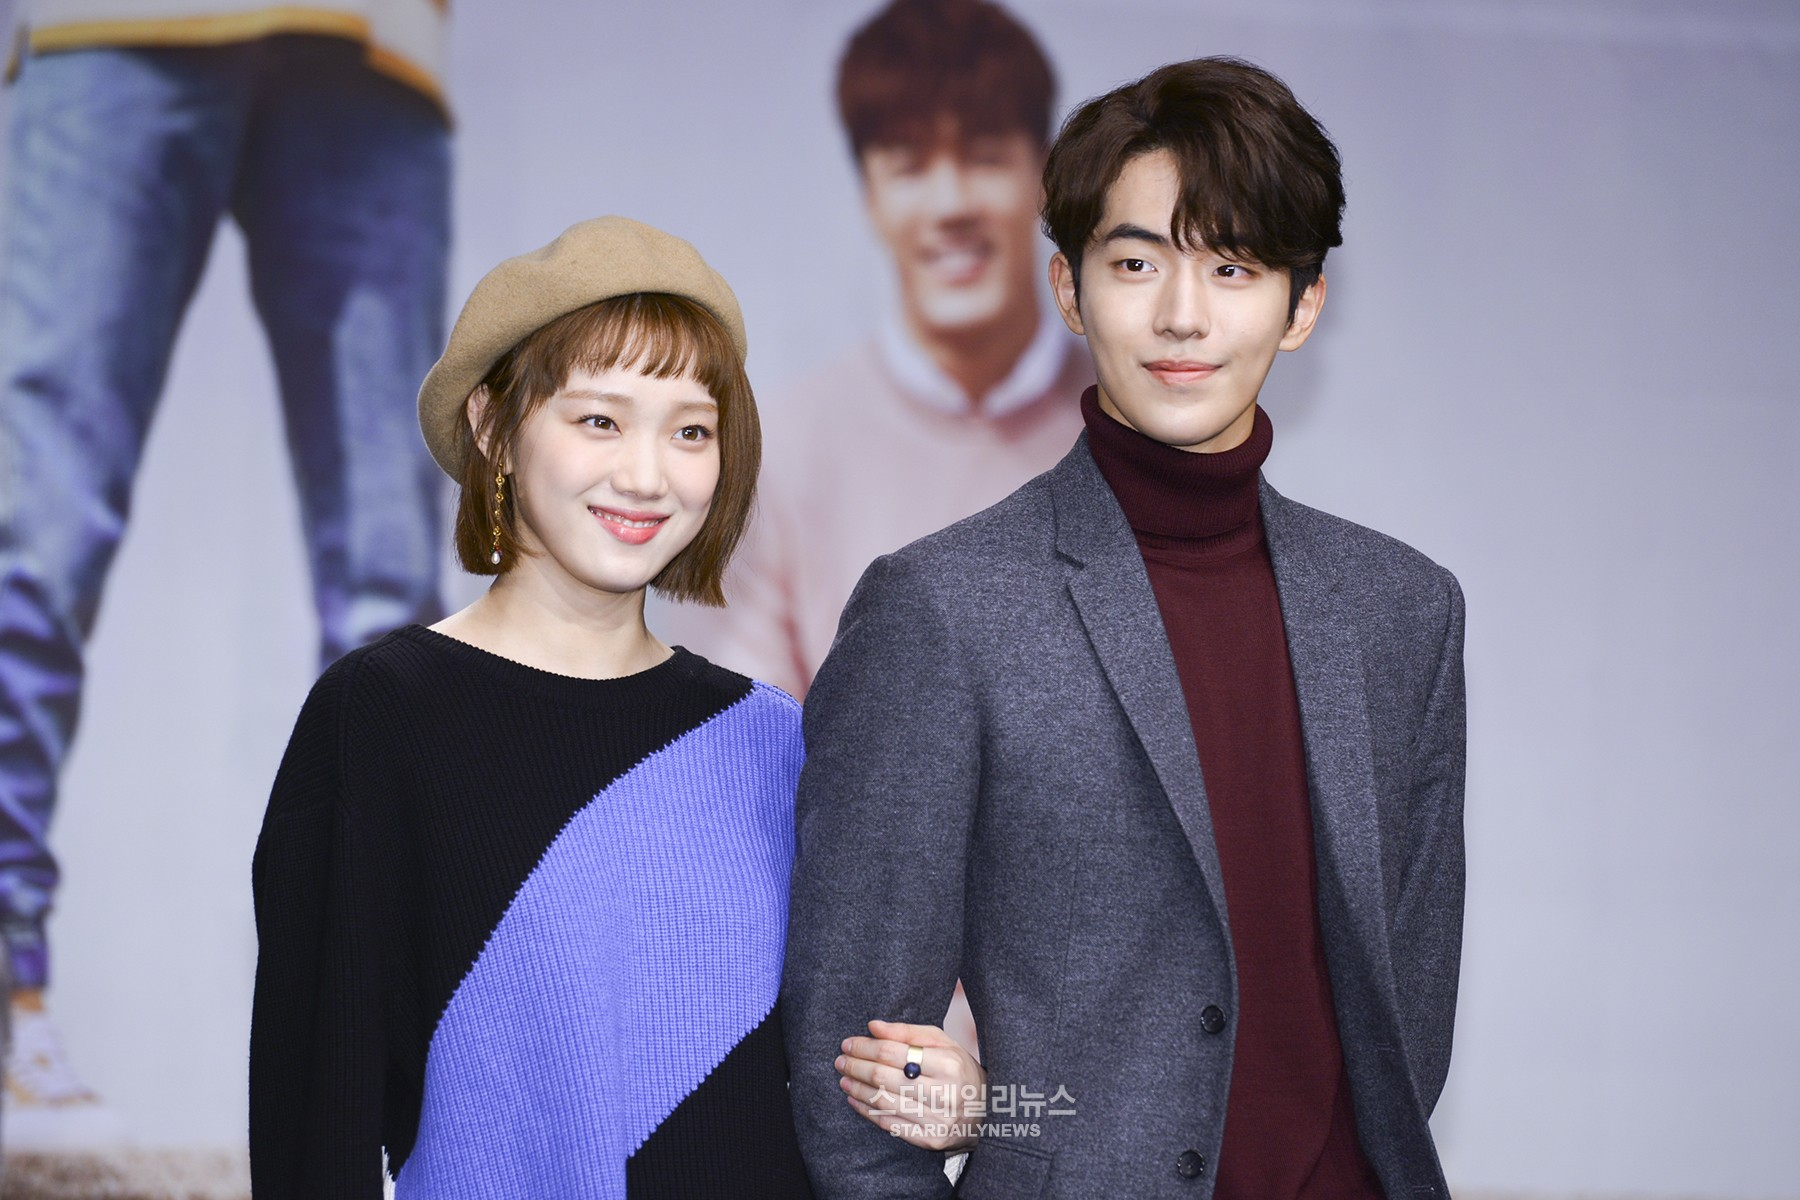 Lee Sung Kyung And Nam Joo Hyuk Talk About Going Up Against Jun Ji